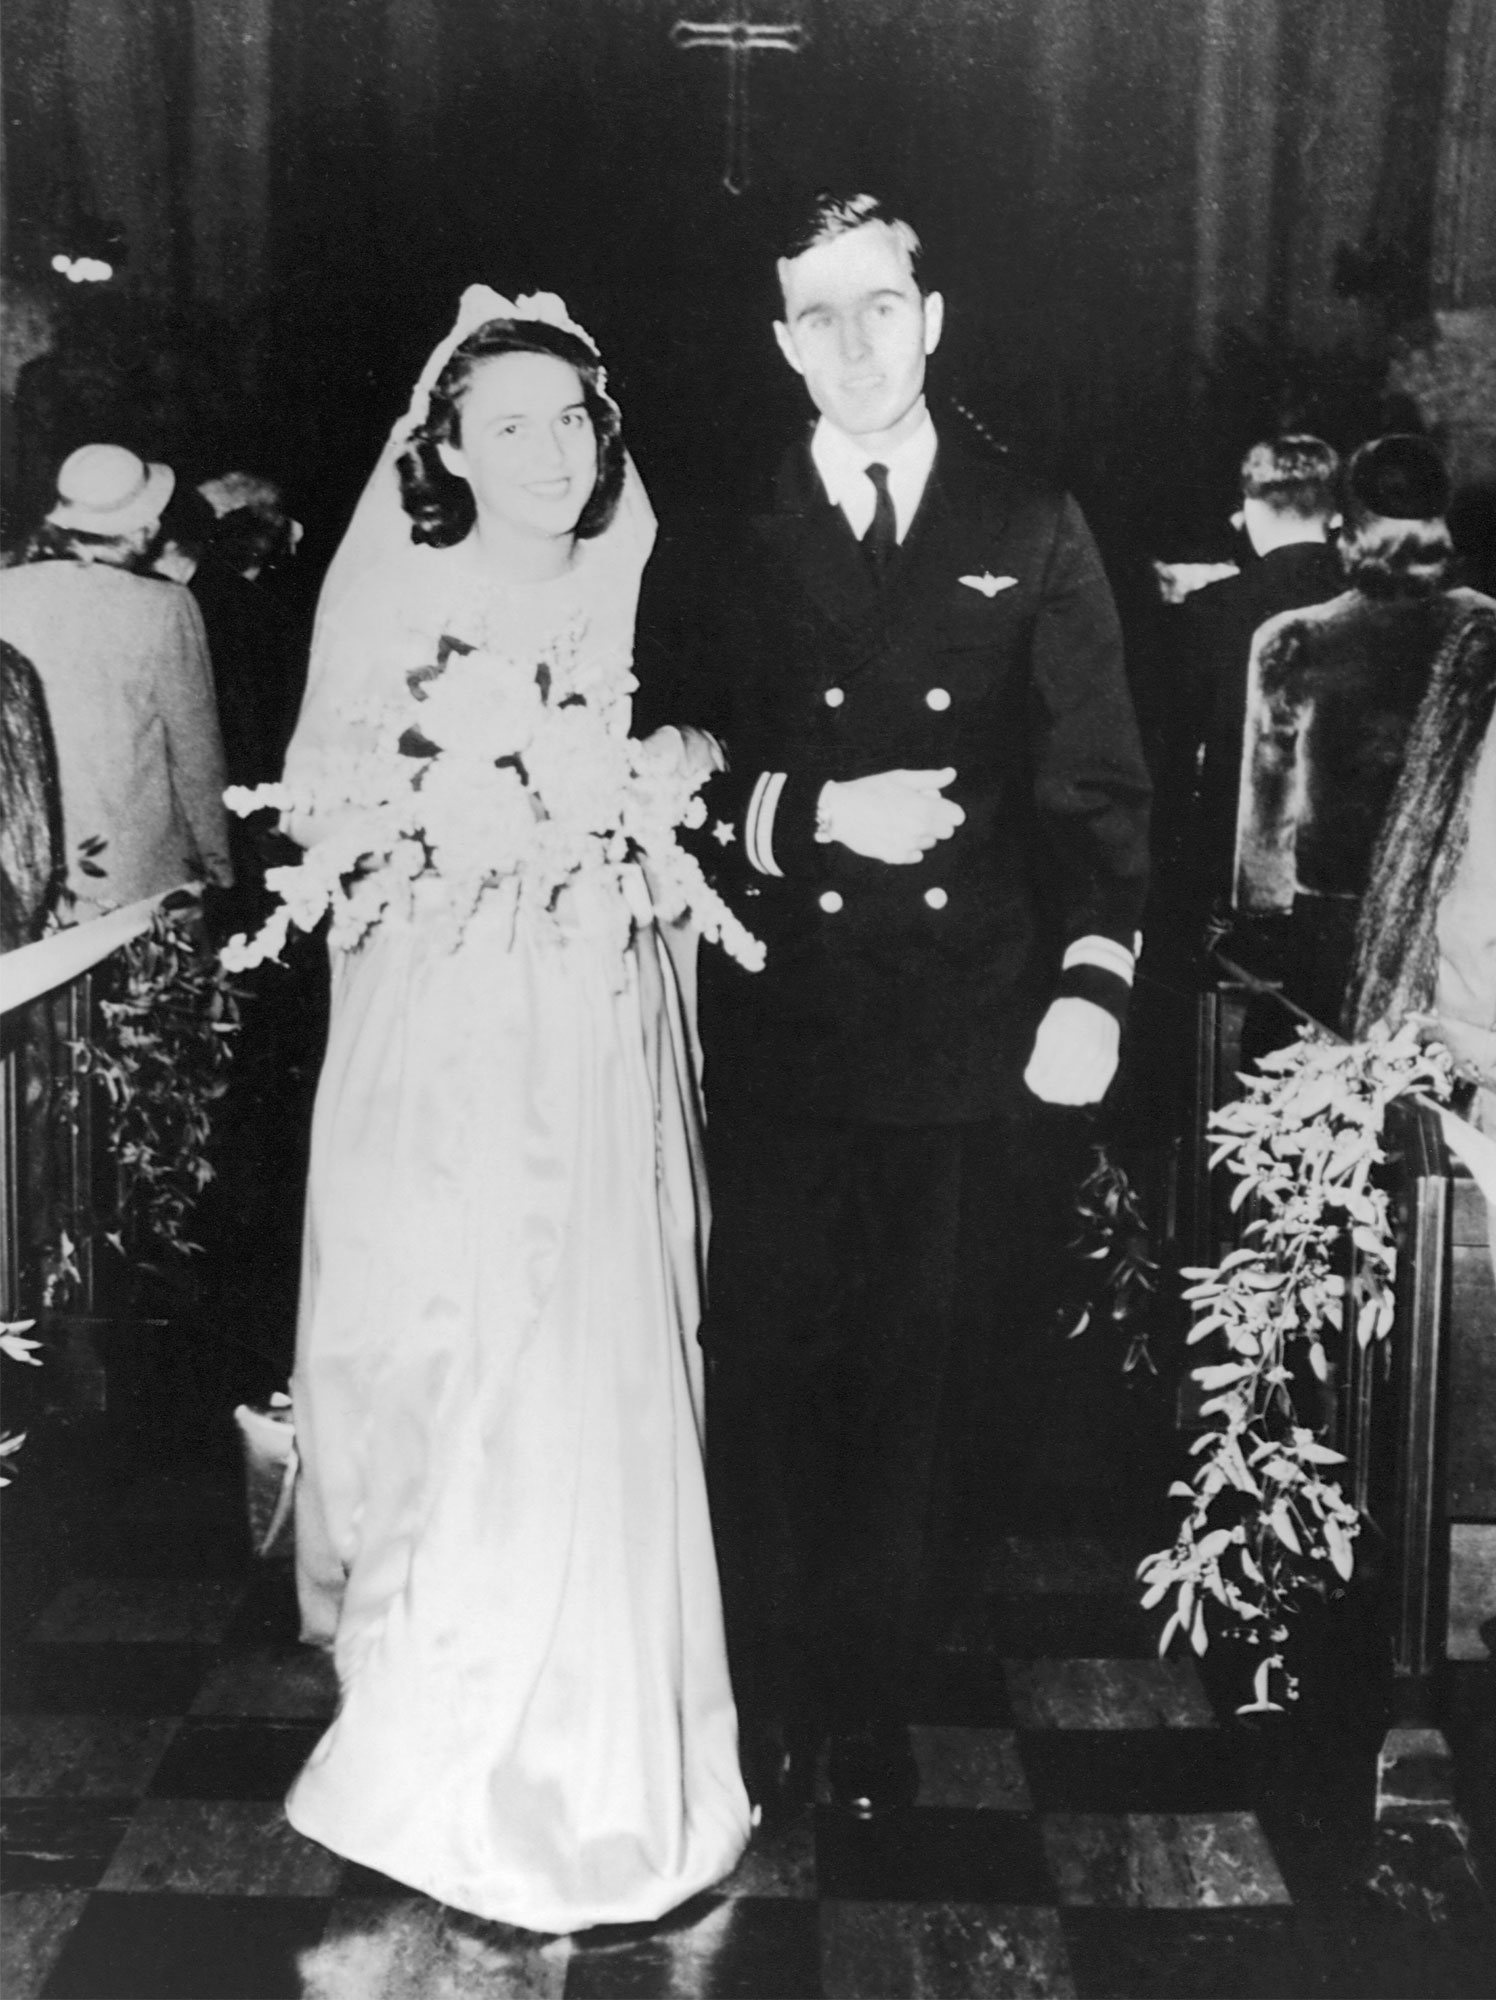 Wedding of George and Barbara Bush